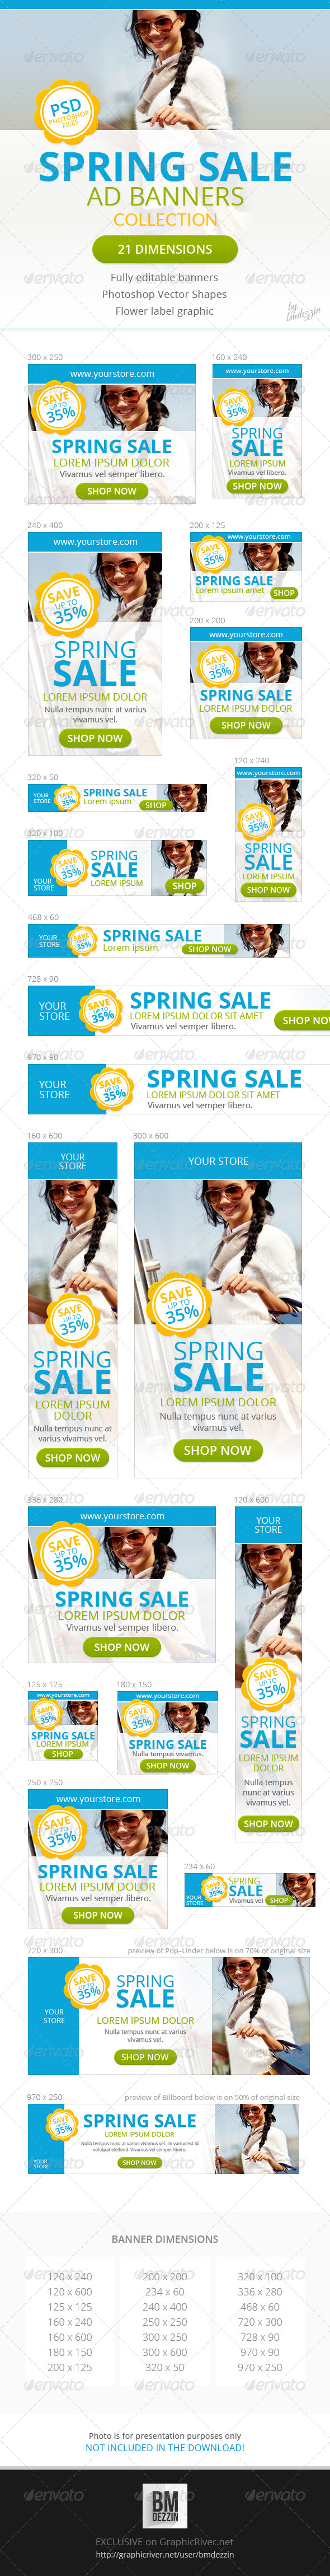 GraphicRiver Spring Sale Promotion Web Ad Banners 6959669